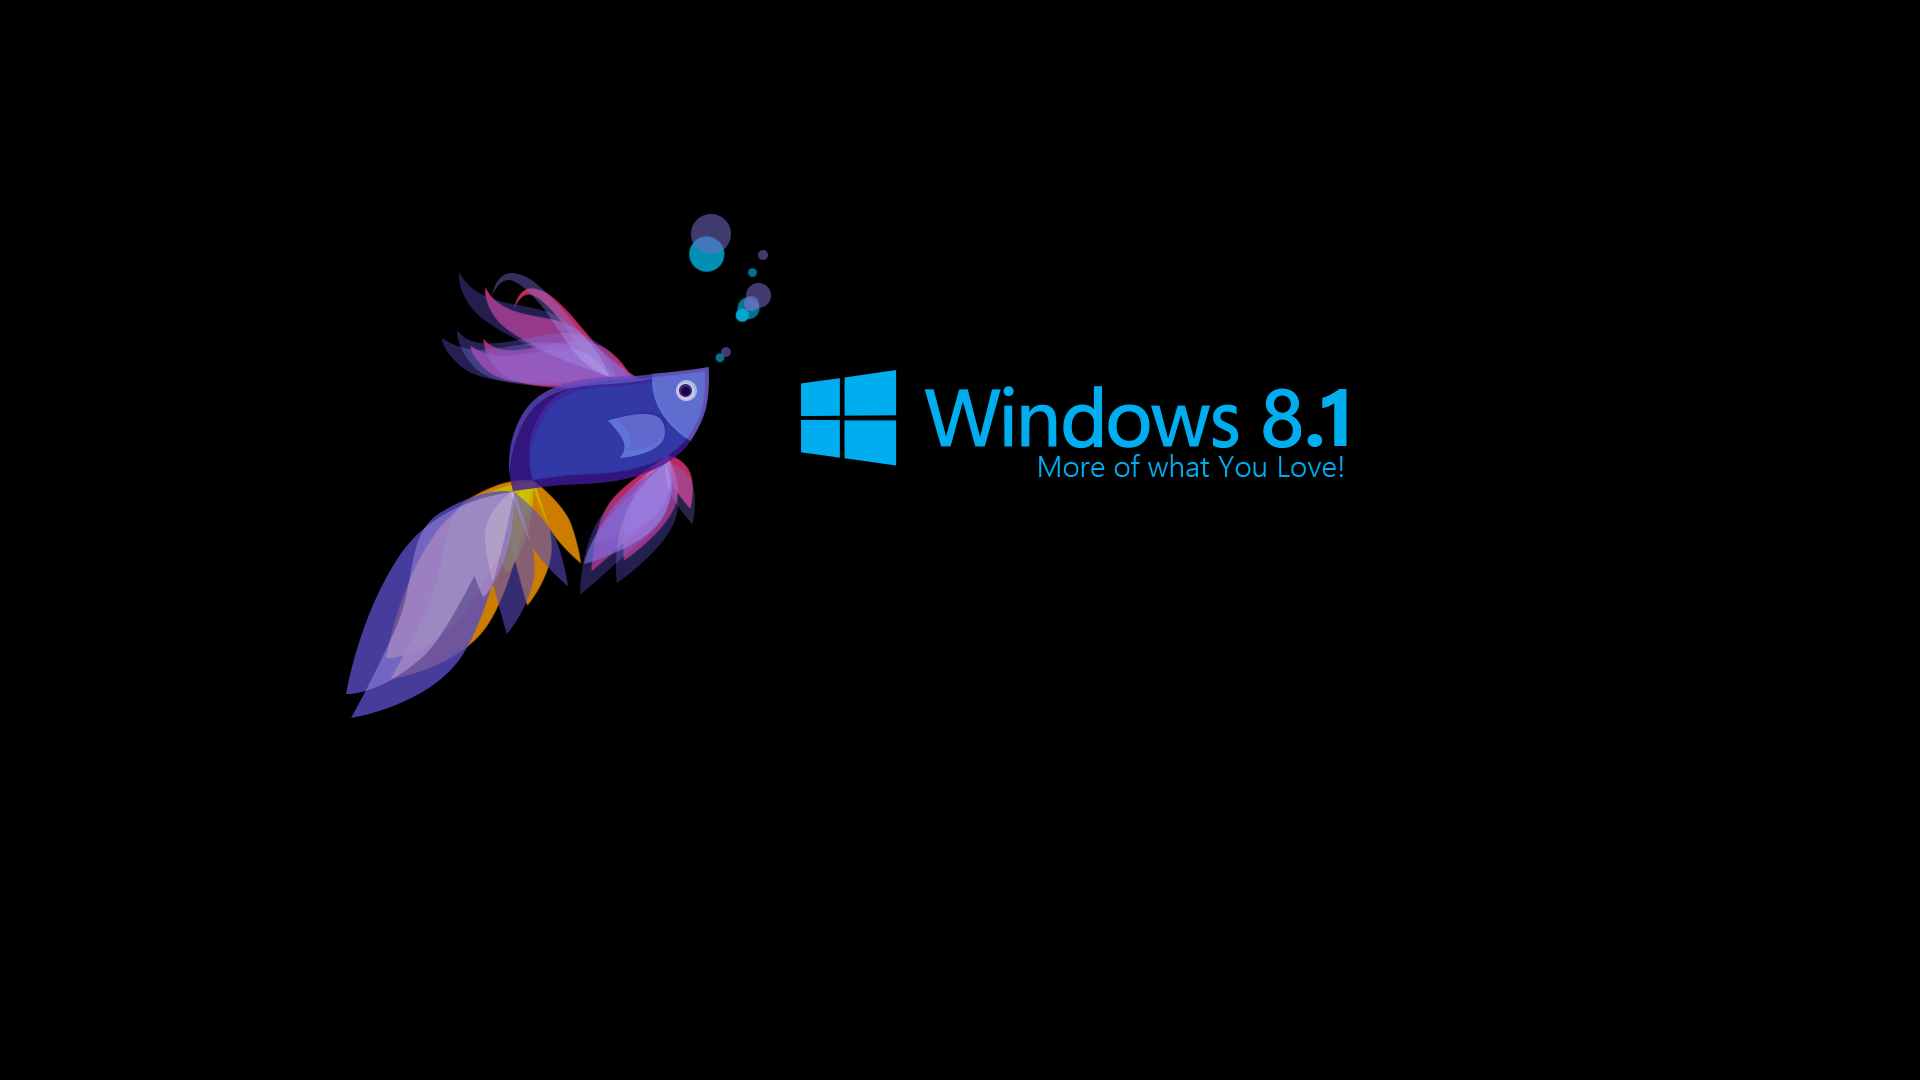 Windows 8.1 HD Wallpapers Download